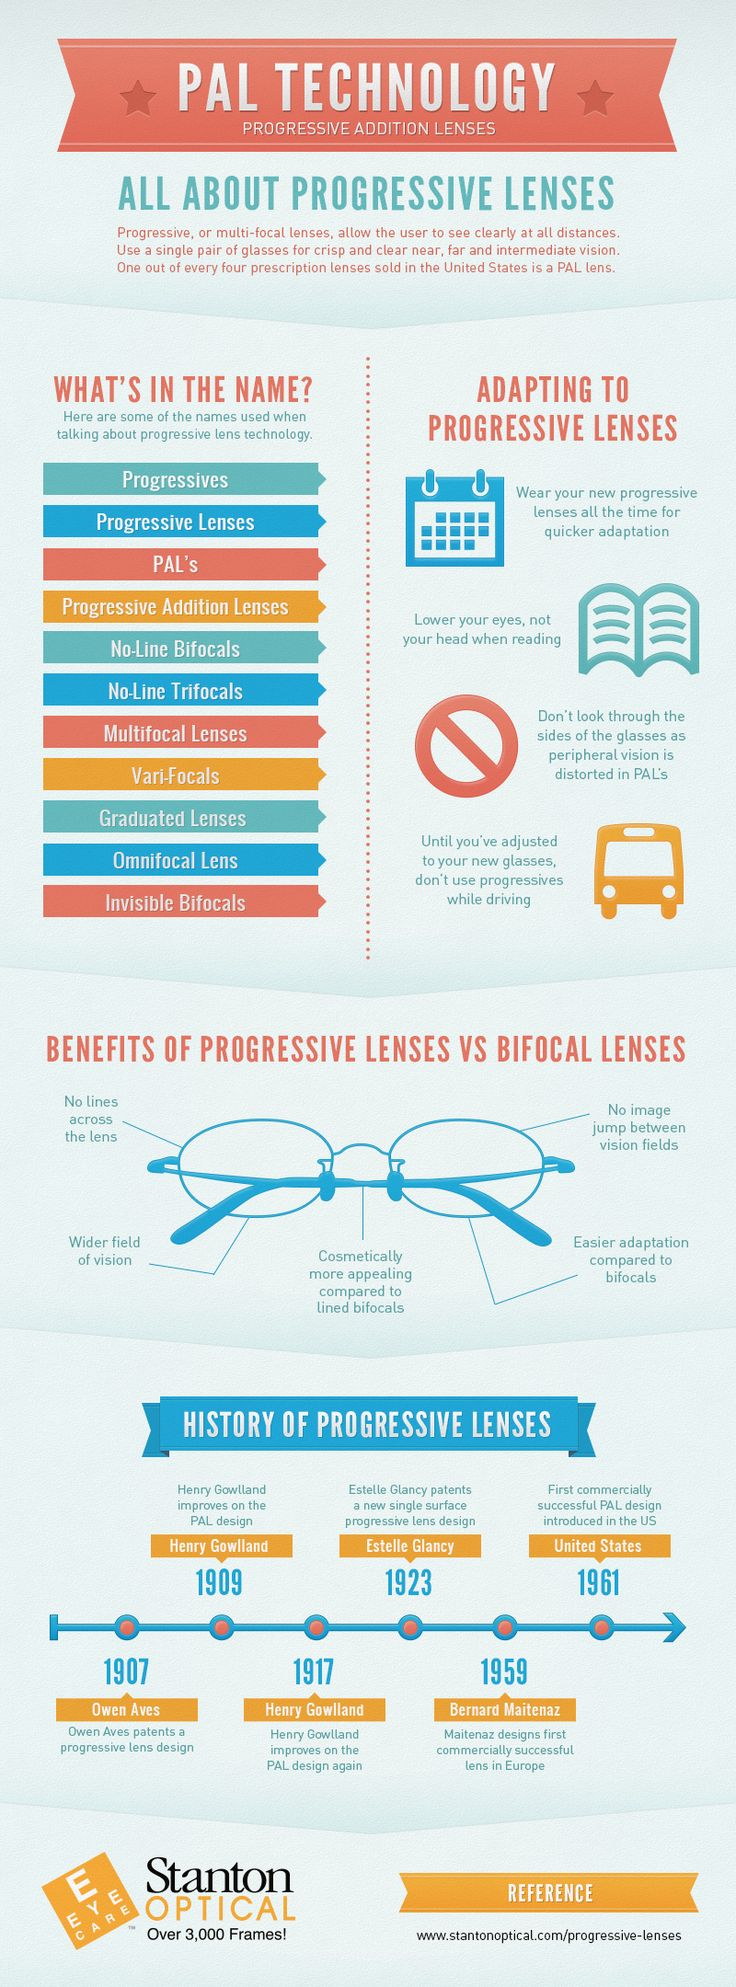 Amazing facts about glasses and lenses